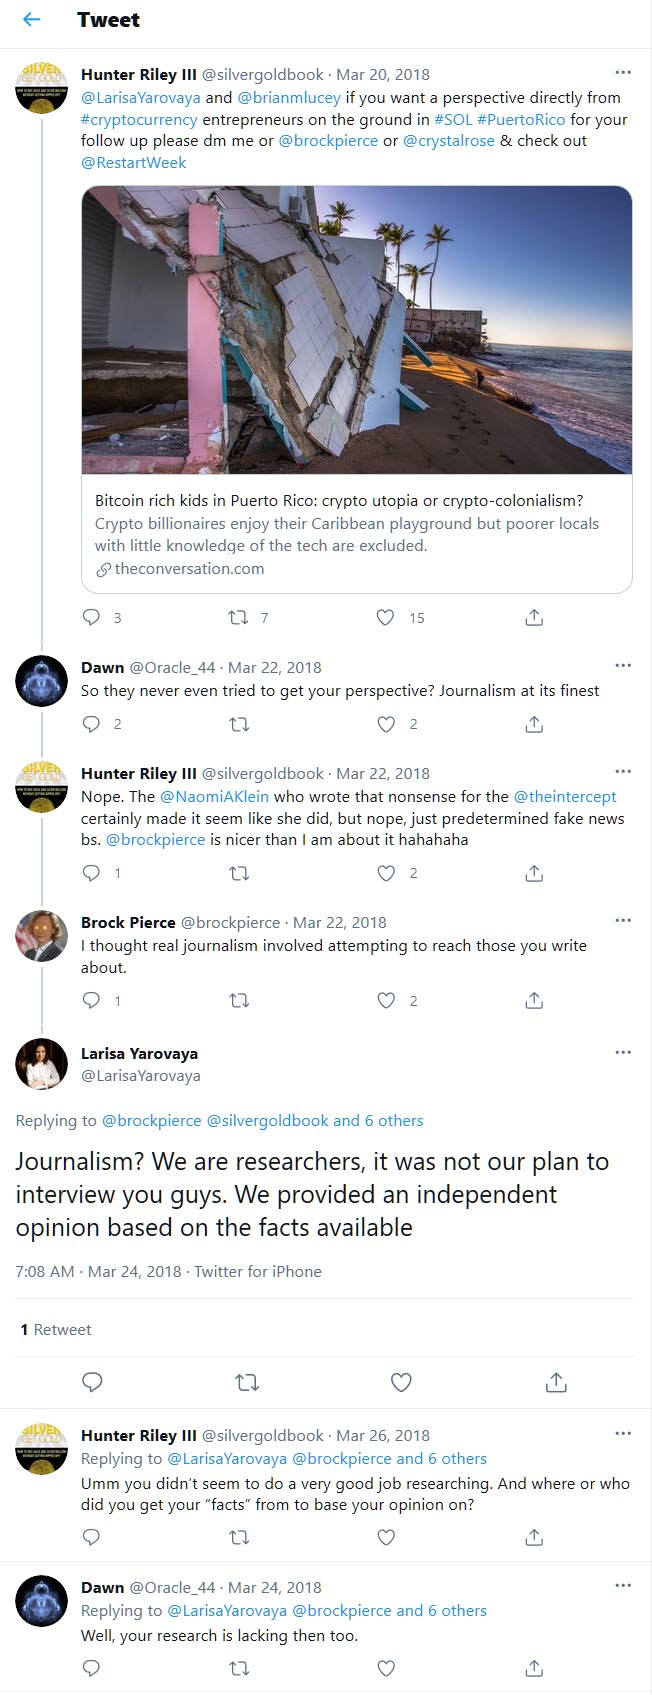 Dr Larisa Yarovaya responds to challenging comments on Twitter.